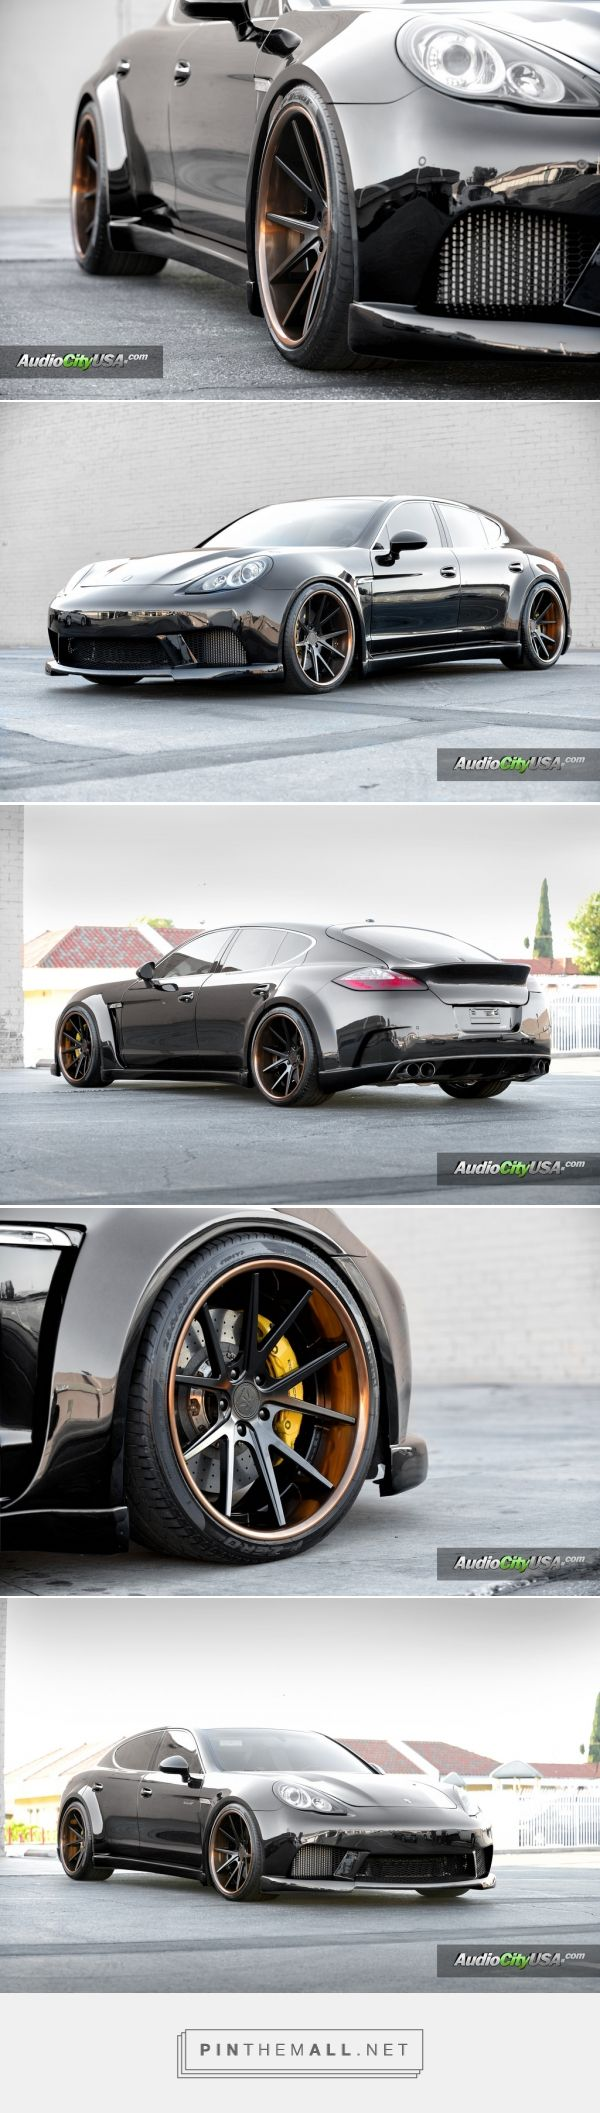 "700 HP Wide Body Porsche Panamera   |   2015 Sema Build   |   22"" Rennen Forged R55   